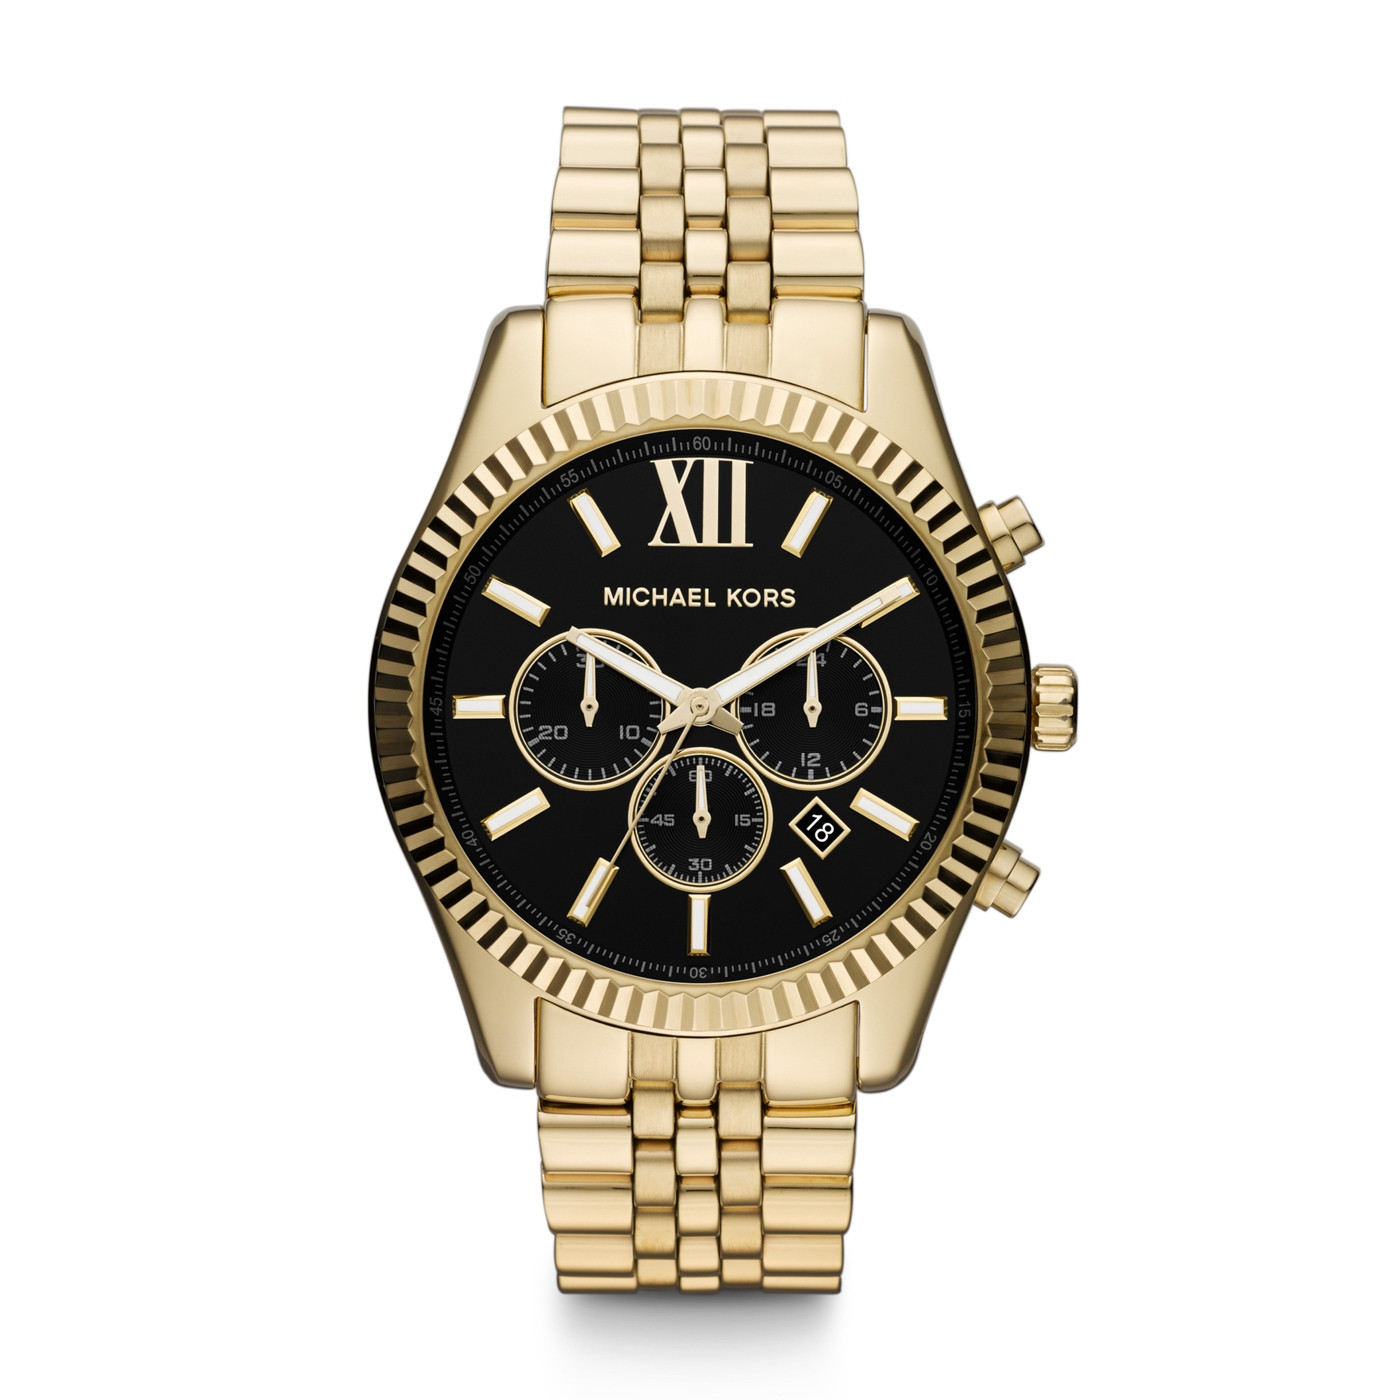 1143c0bf988ee Michael Kors Lexington Watch MK8286 - Watches